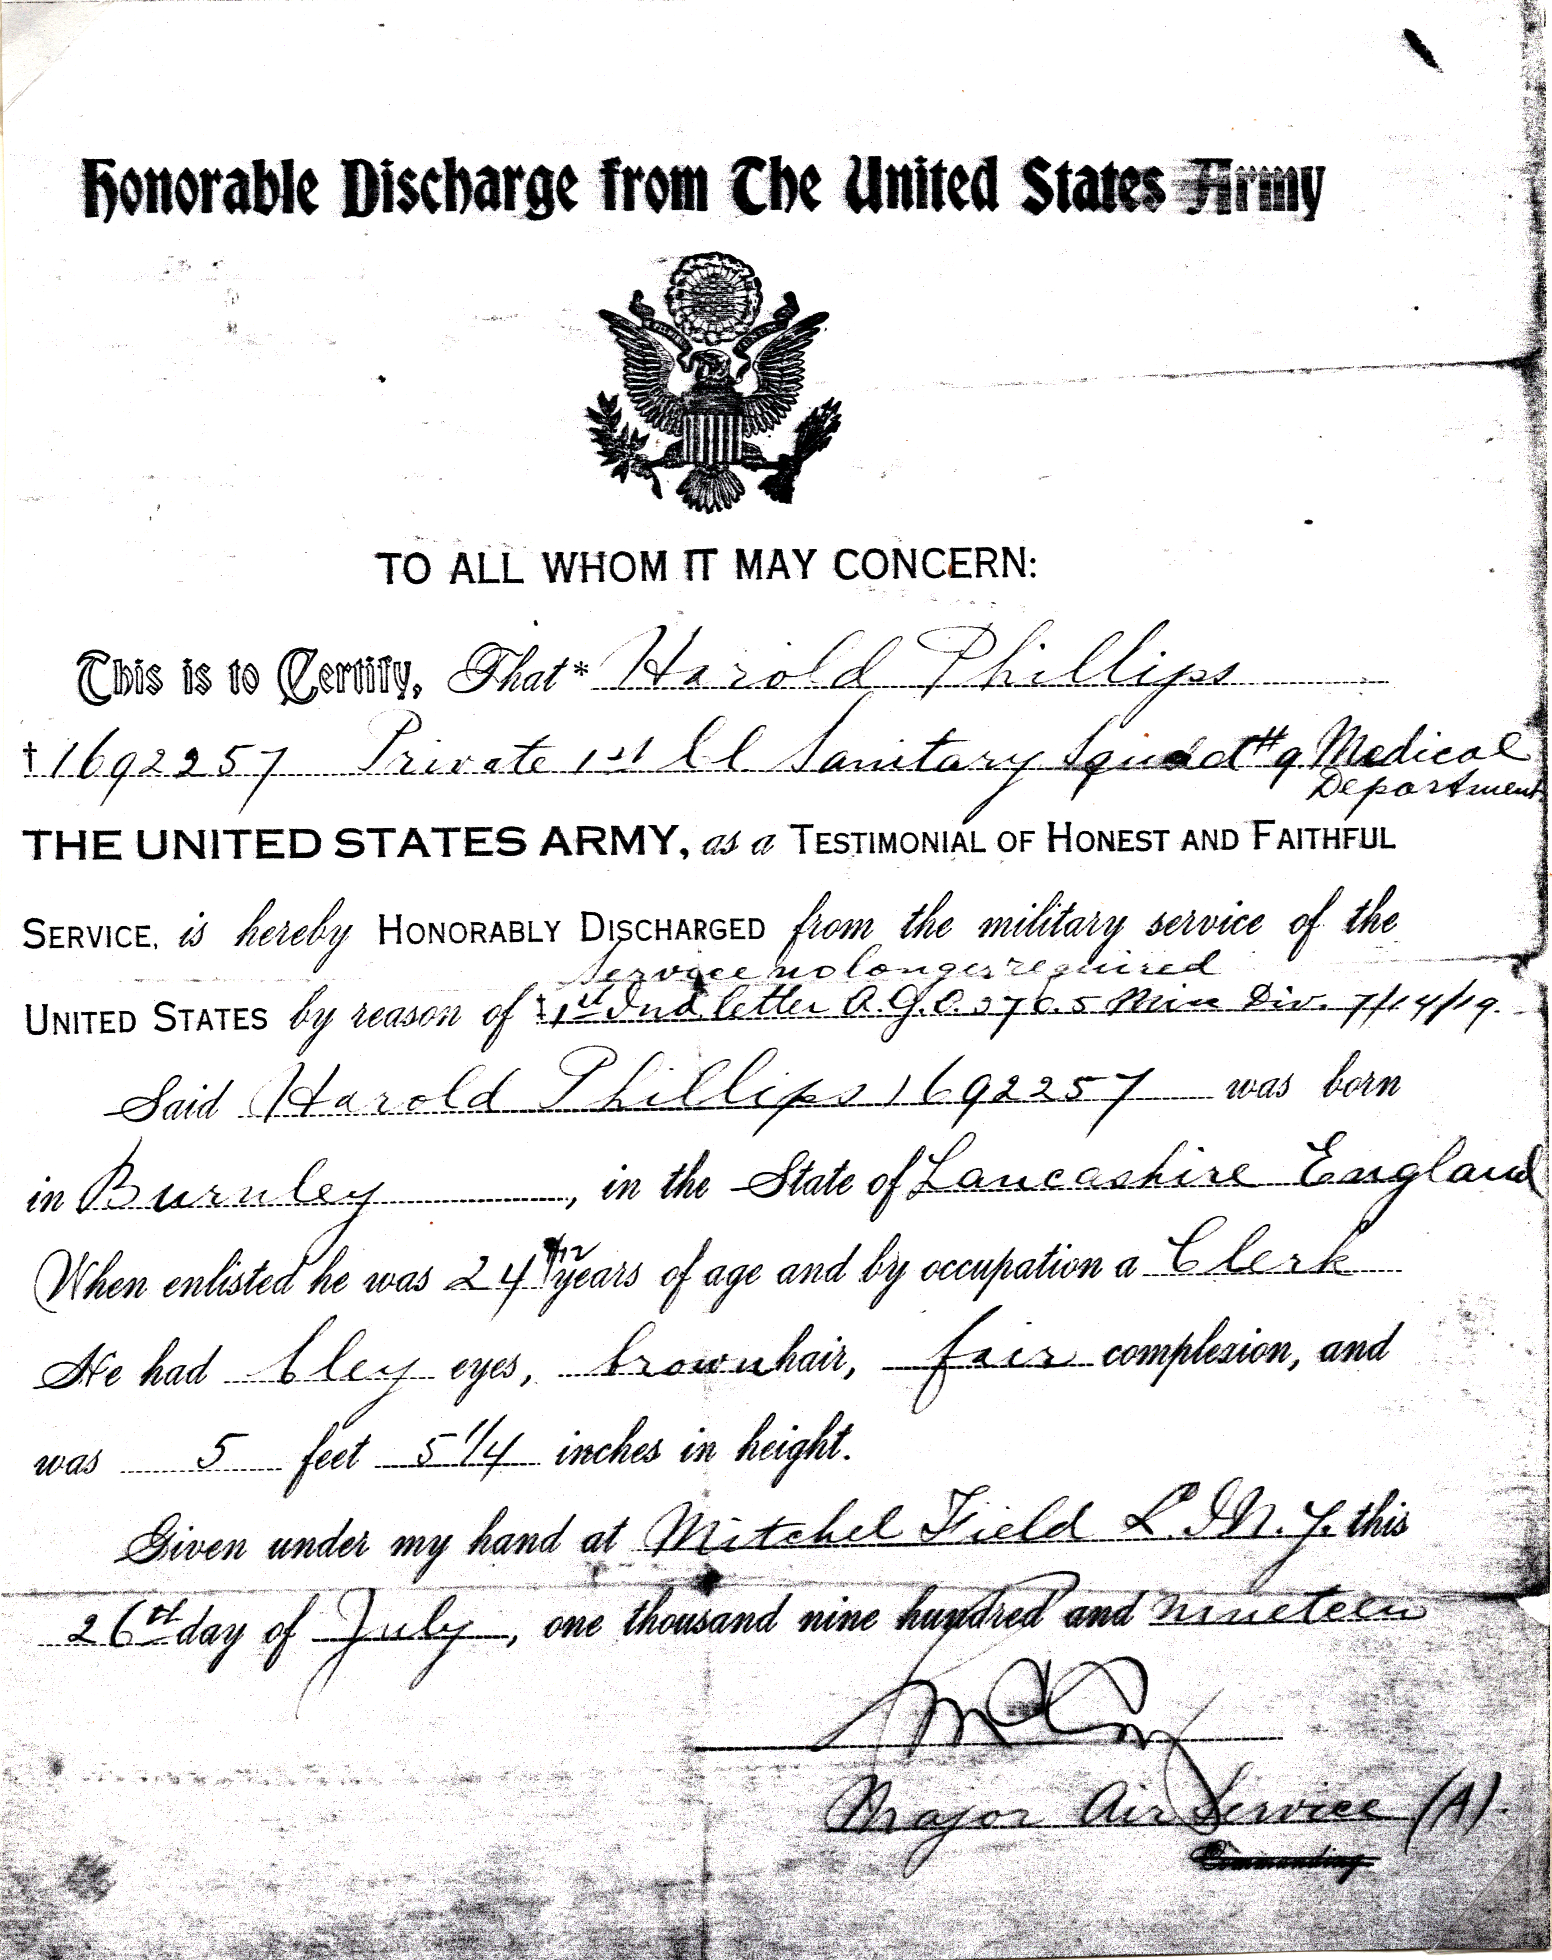 Harold Phillips US Army Discharge Papers 07-26-1919